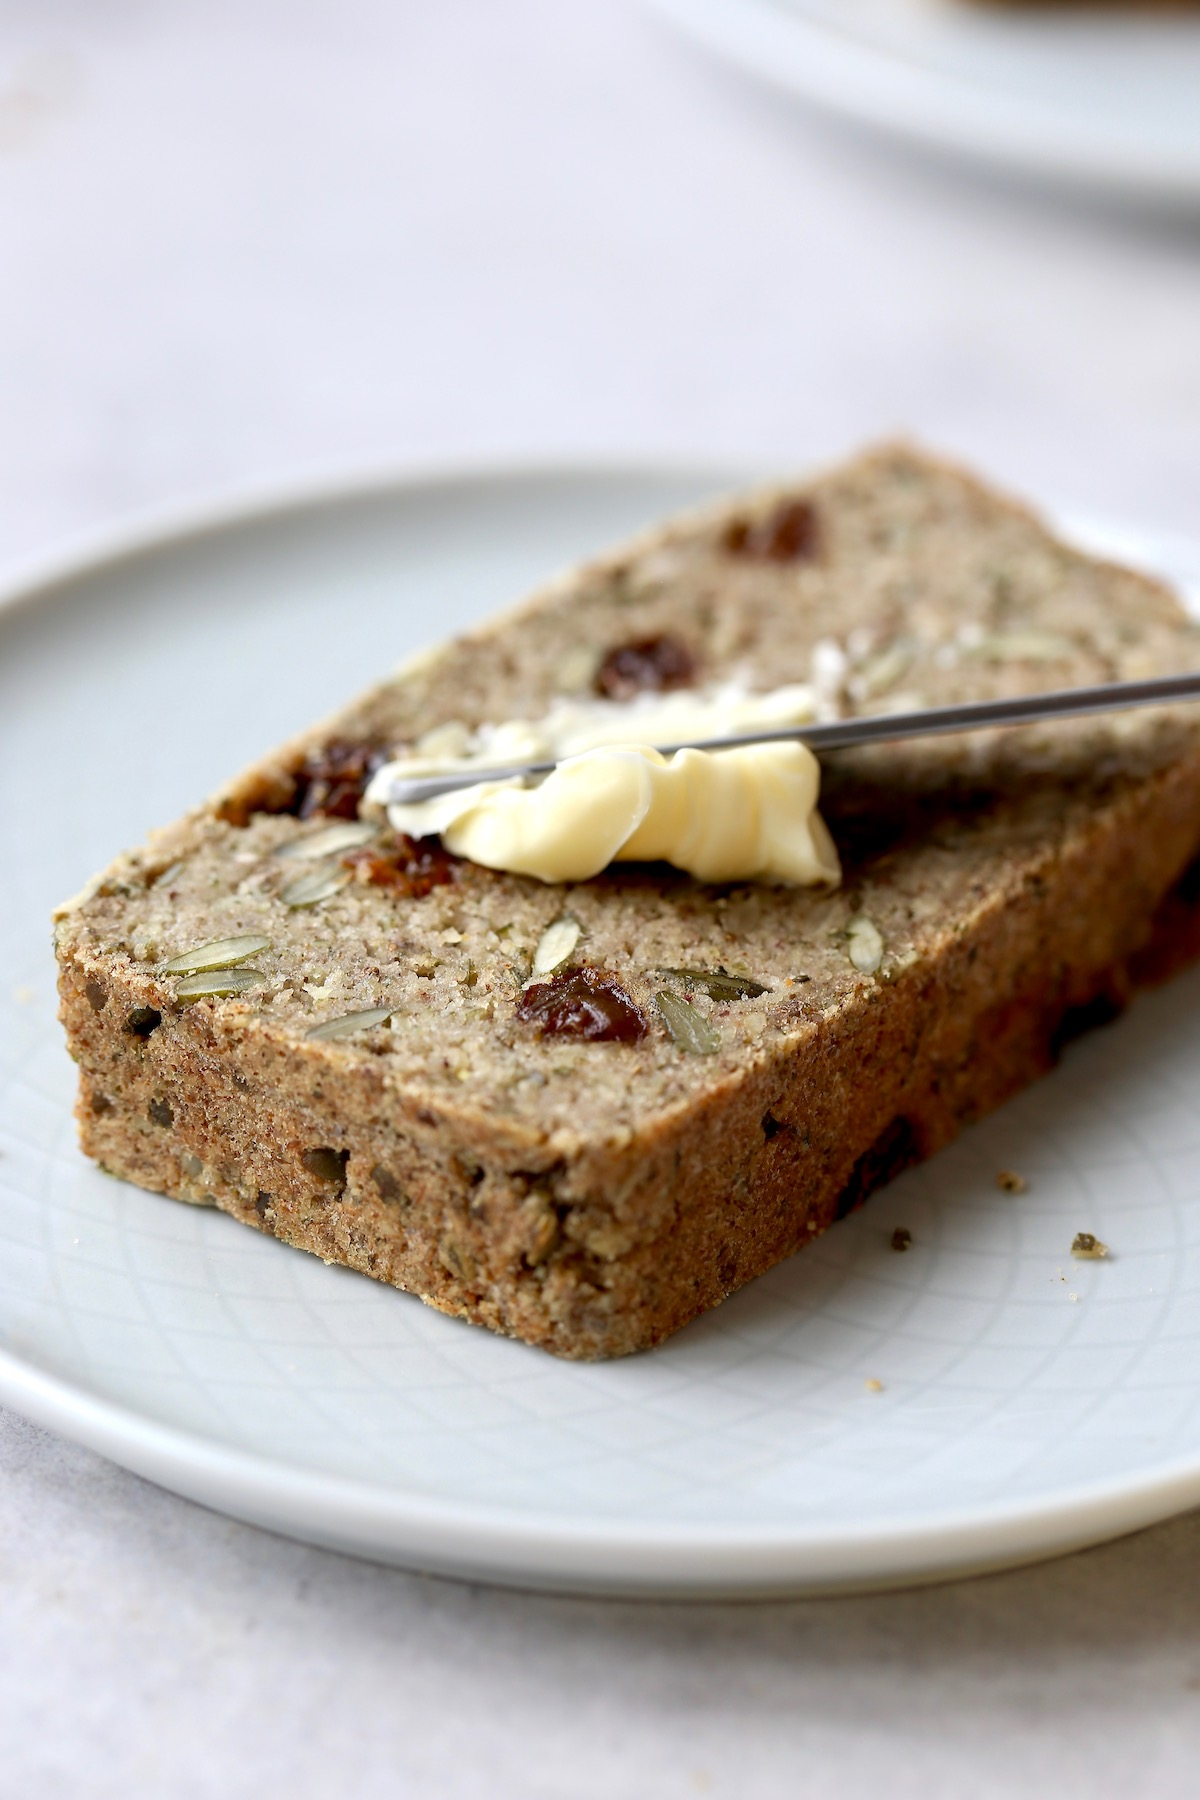 Cinnamon raisin seed bread being smeared with vegan butter